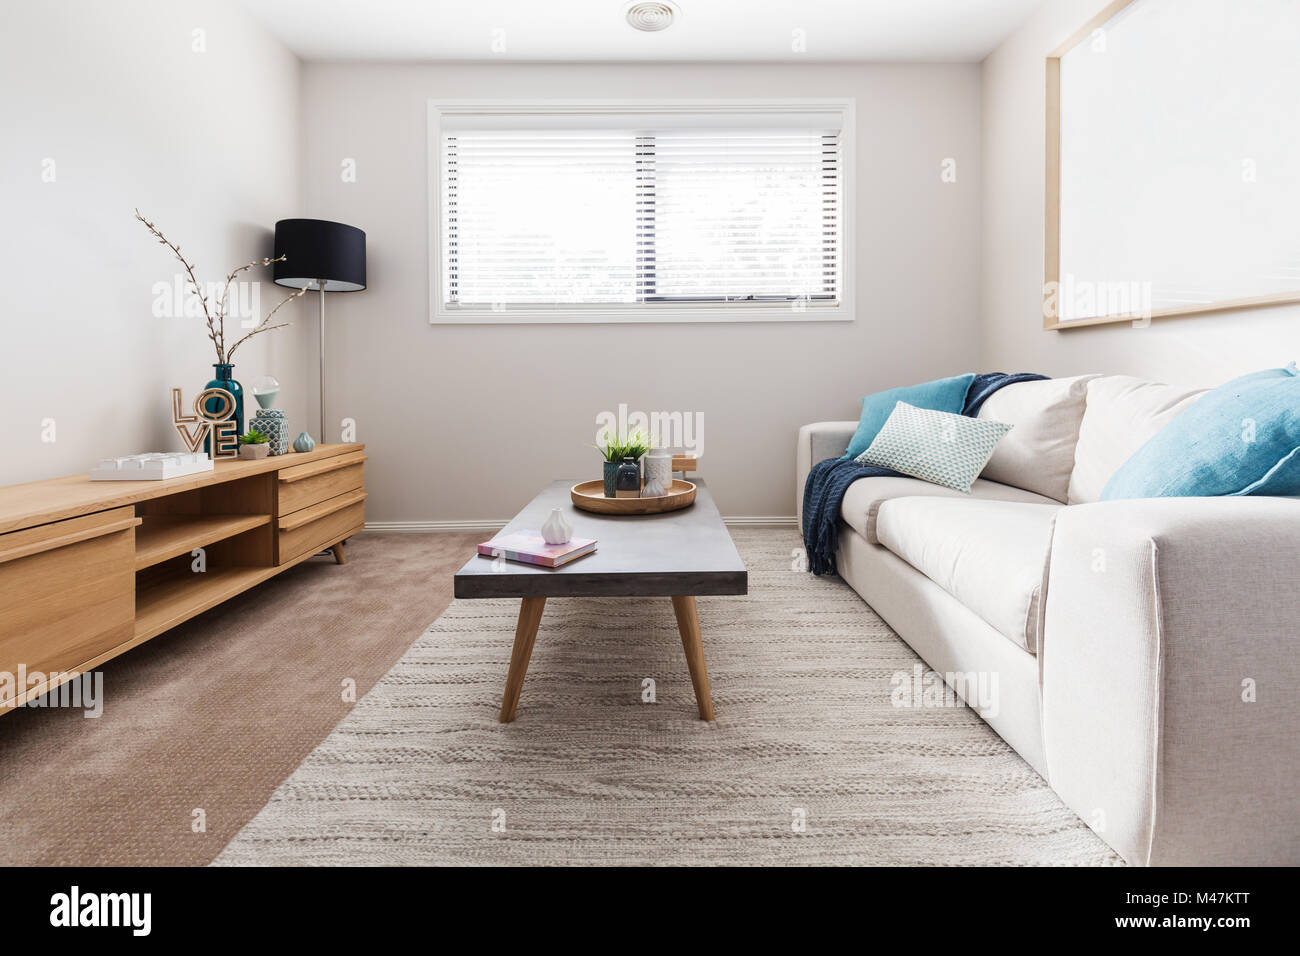 teal accents living room pictures of rooms with white leather sofas scandi style interior accent cushions stock